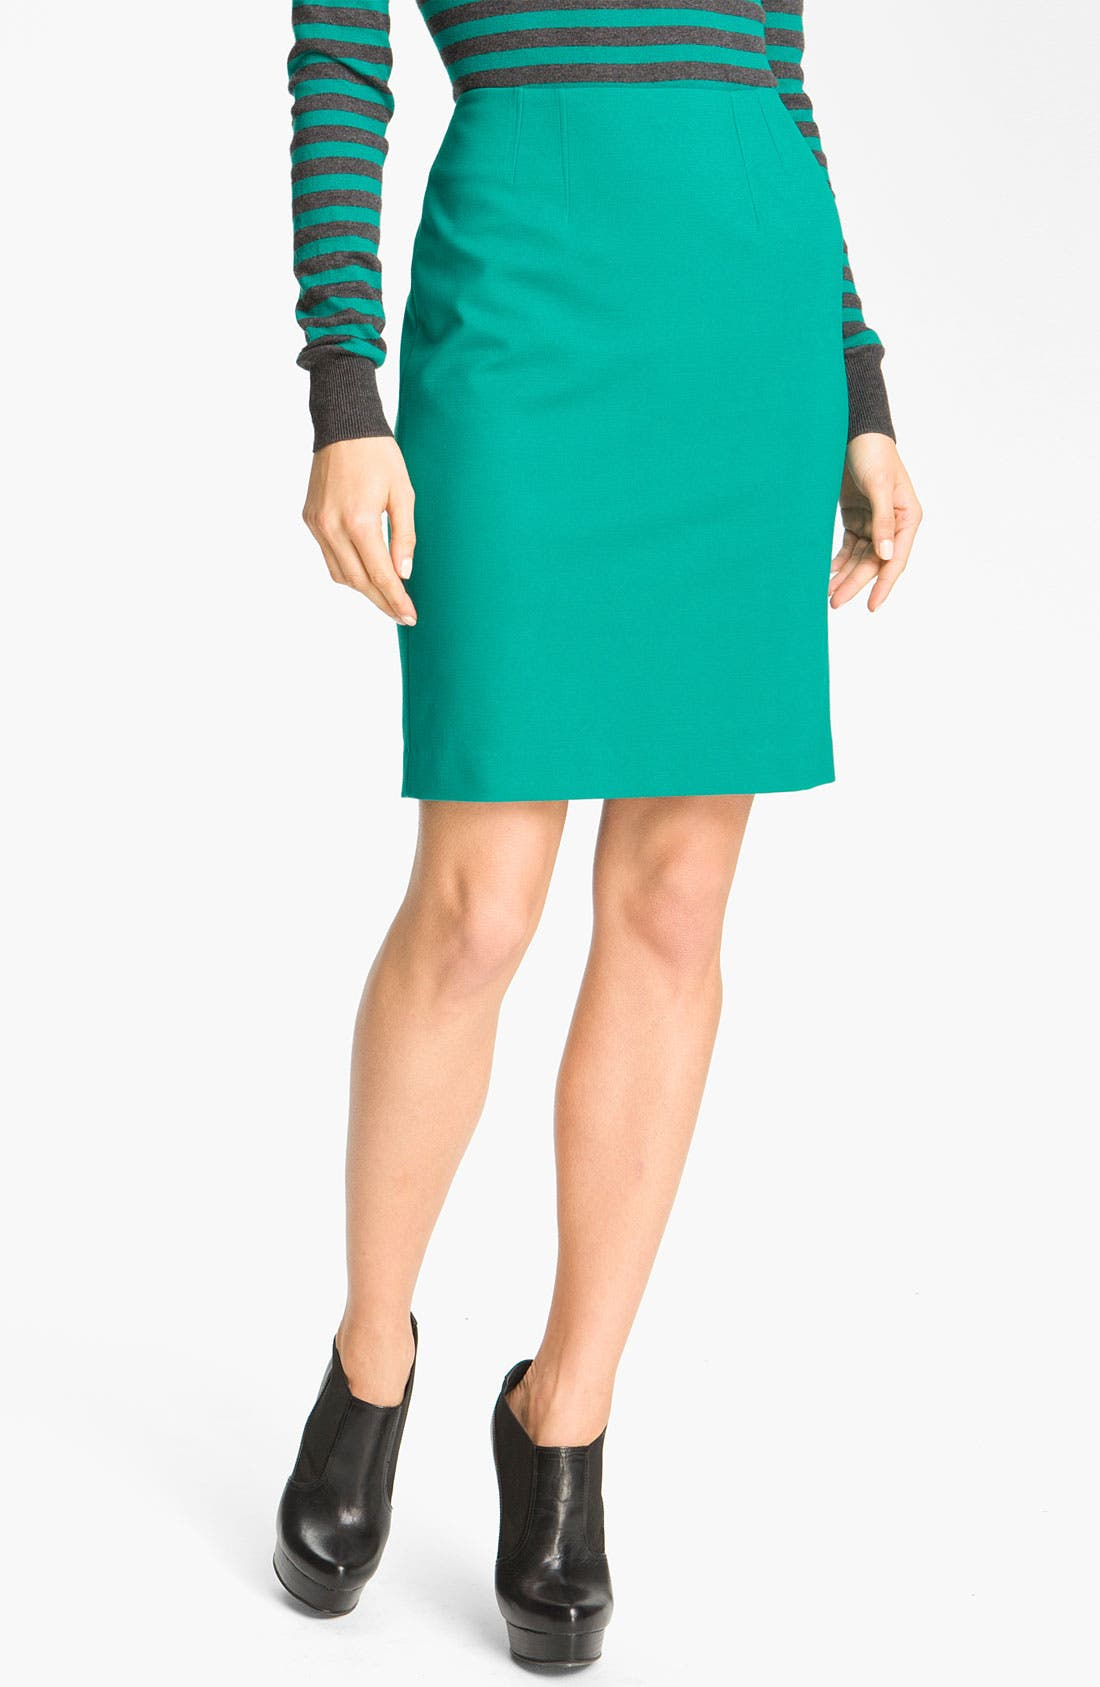 Alternate Image 1 Selected - Halogen Crew Neck Sweater and Pencil Skirt